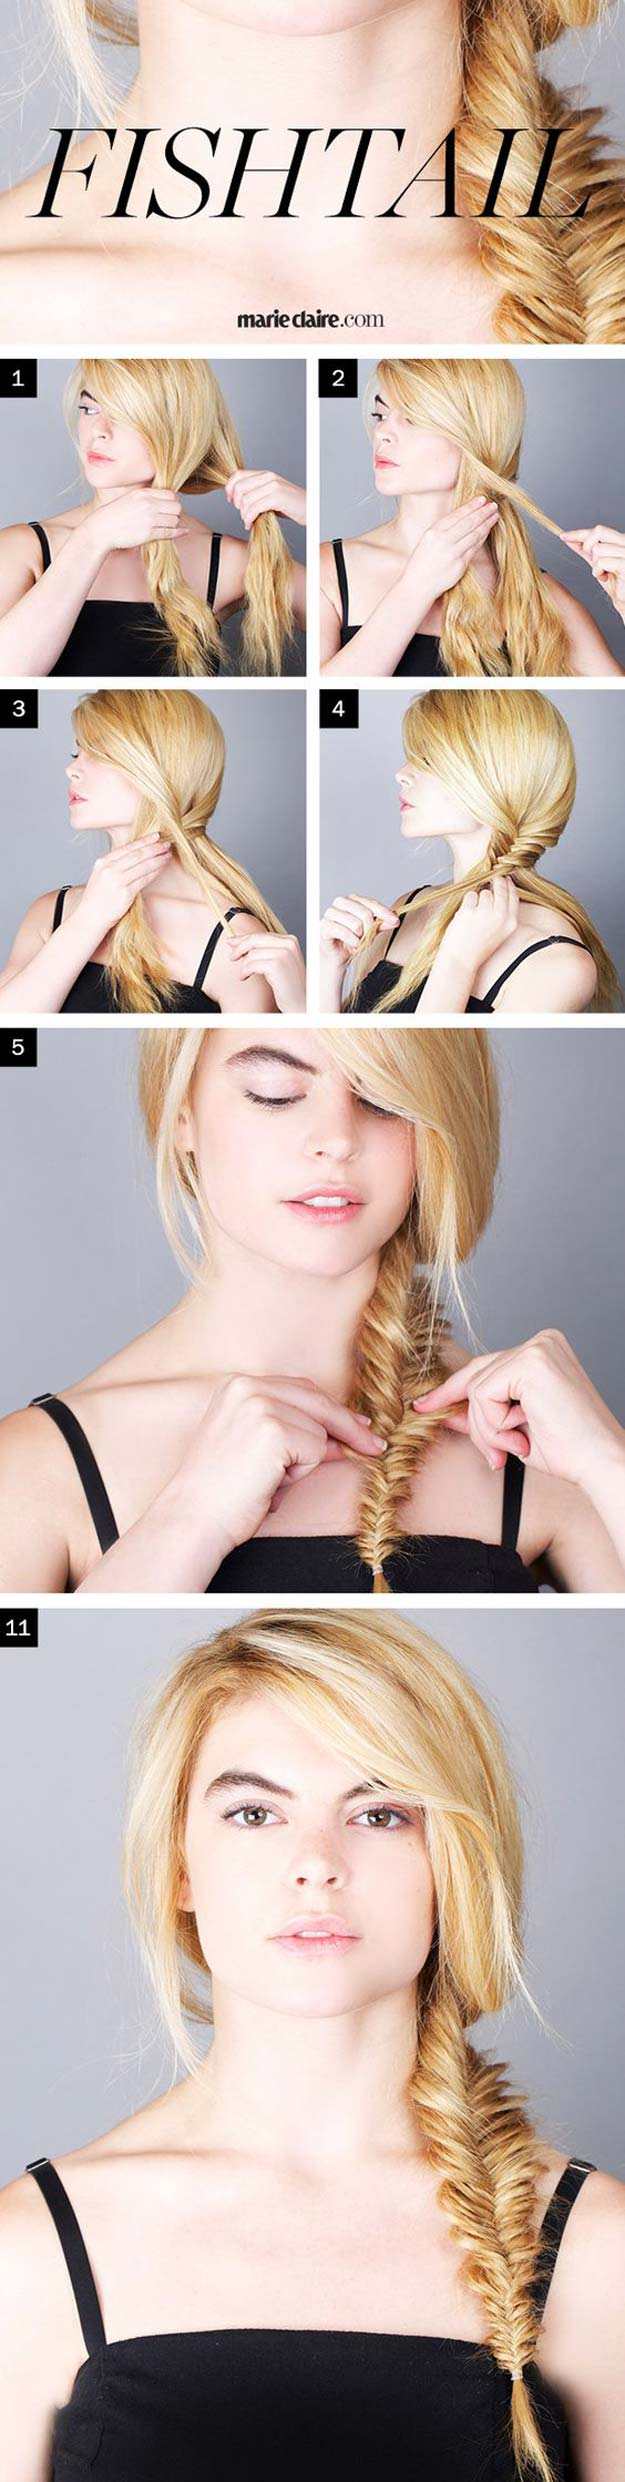 Best Hair Braiding Tutorials - The Perfect Fishtail Braid - Easy Step by Step Tutorials for Braids - How To Braid Fishtail, French Braids, Flower Crown, Side Braids, Cornrows, Updos - Cool Braided Hairstyles for Girls, Teens and Women - School, Day and Evening, Boho, Casual and Formal Looks #hairstyles #braiding #braidingtutorials #diyhair